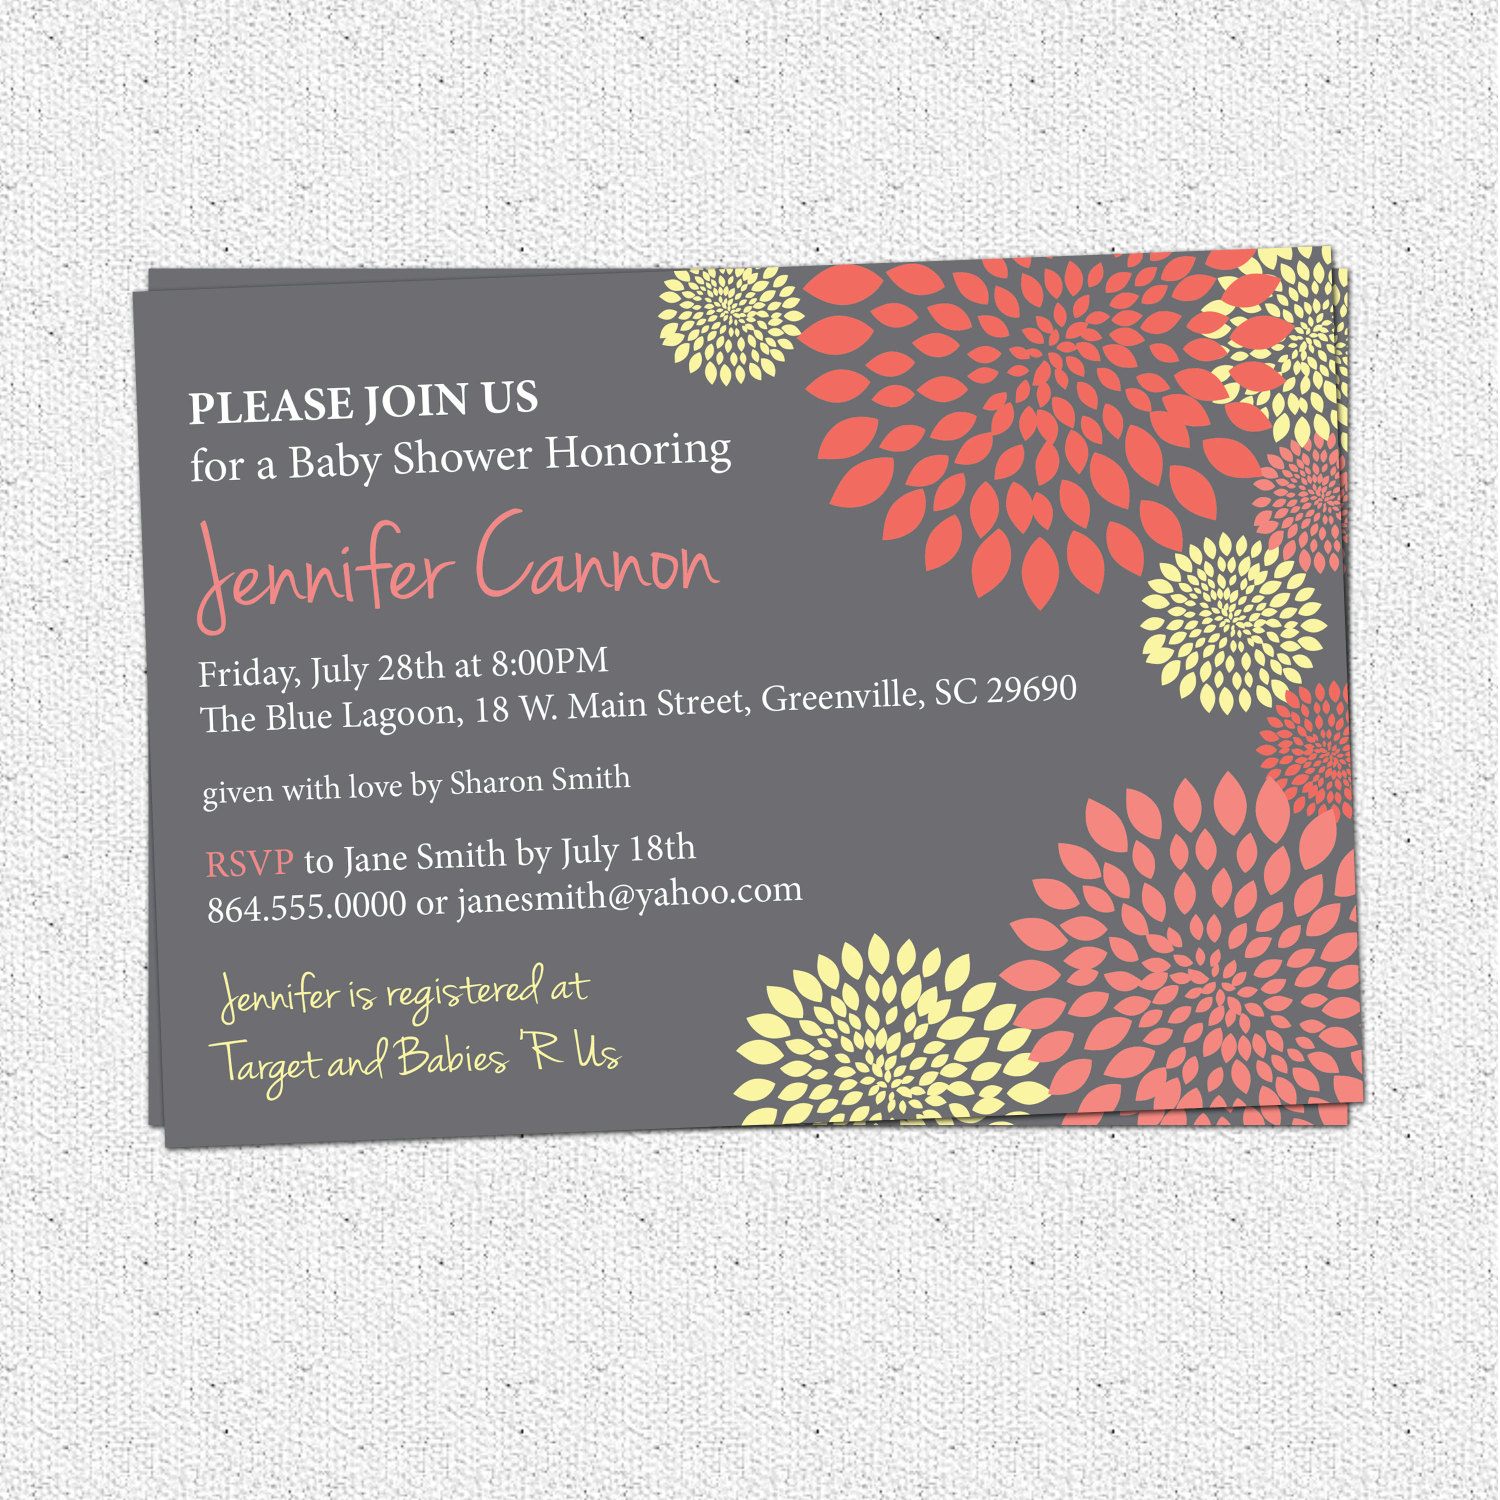 Gray And Yellow Baby Shower Invitations Part - 23: Baby Bridal Shower Invitations, Girl Coral Salmon And Pale Yellow And  Charcoal Grey Gray Floral